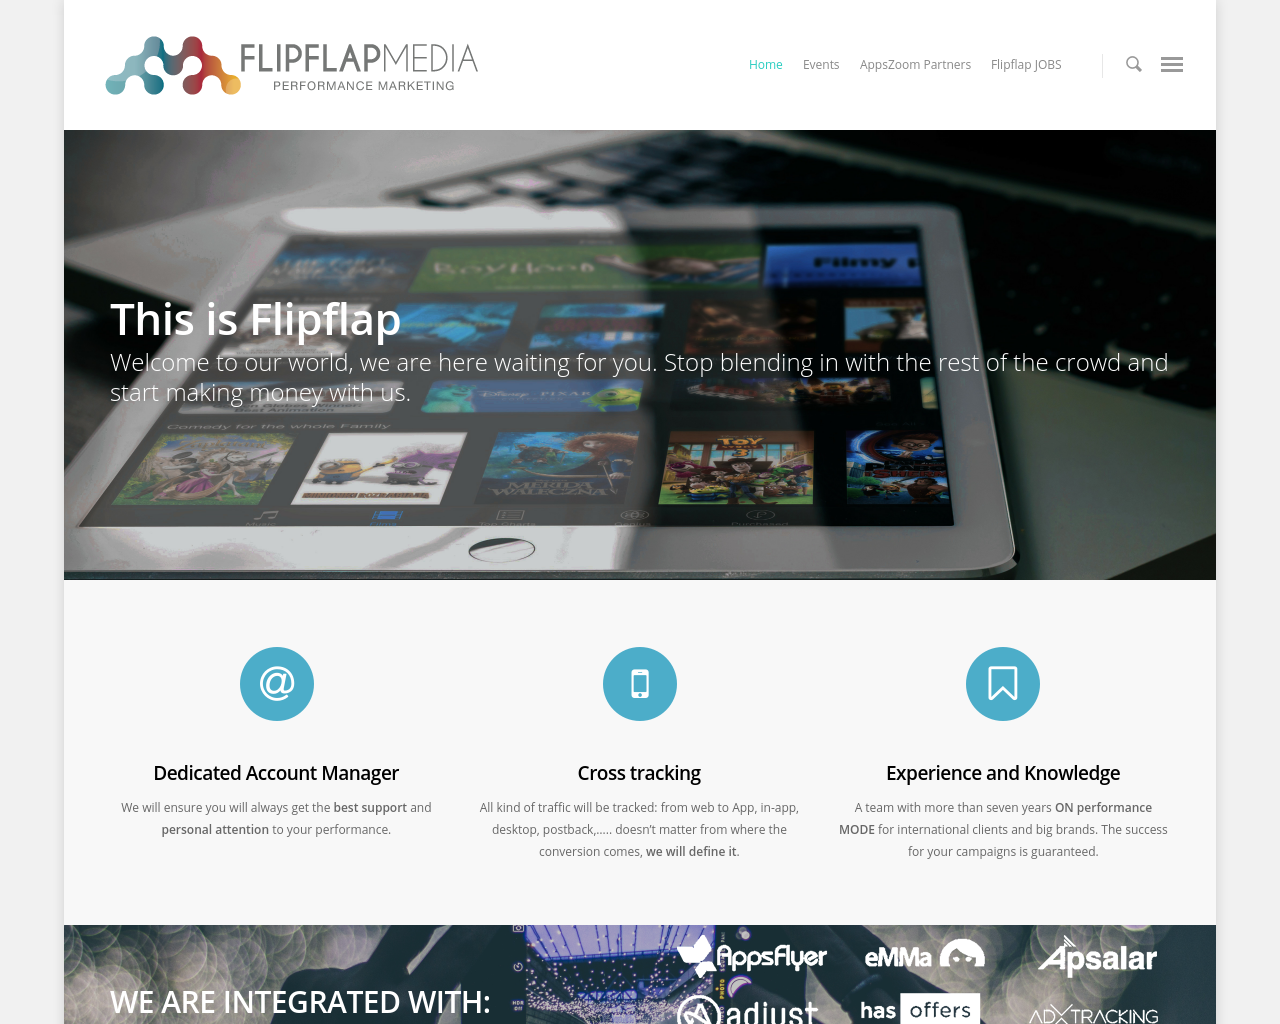 Flipflap-Media-Advertising-Reviews-Pricing